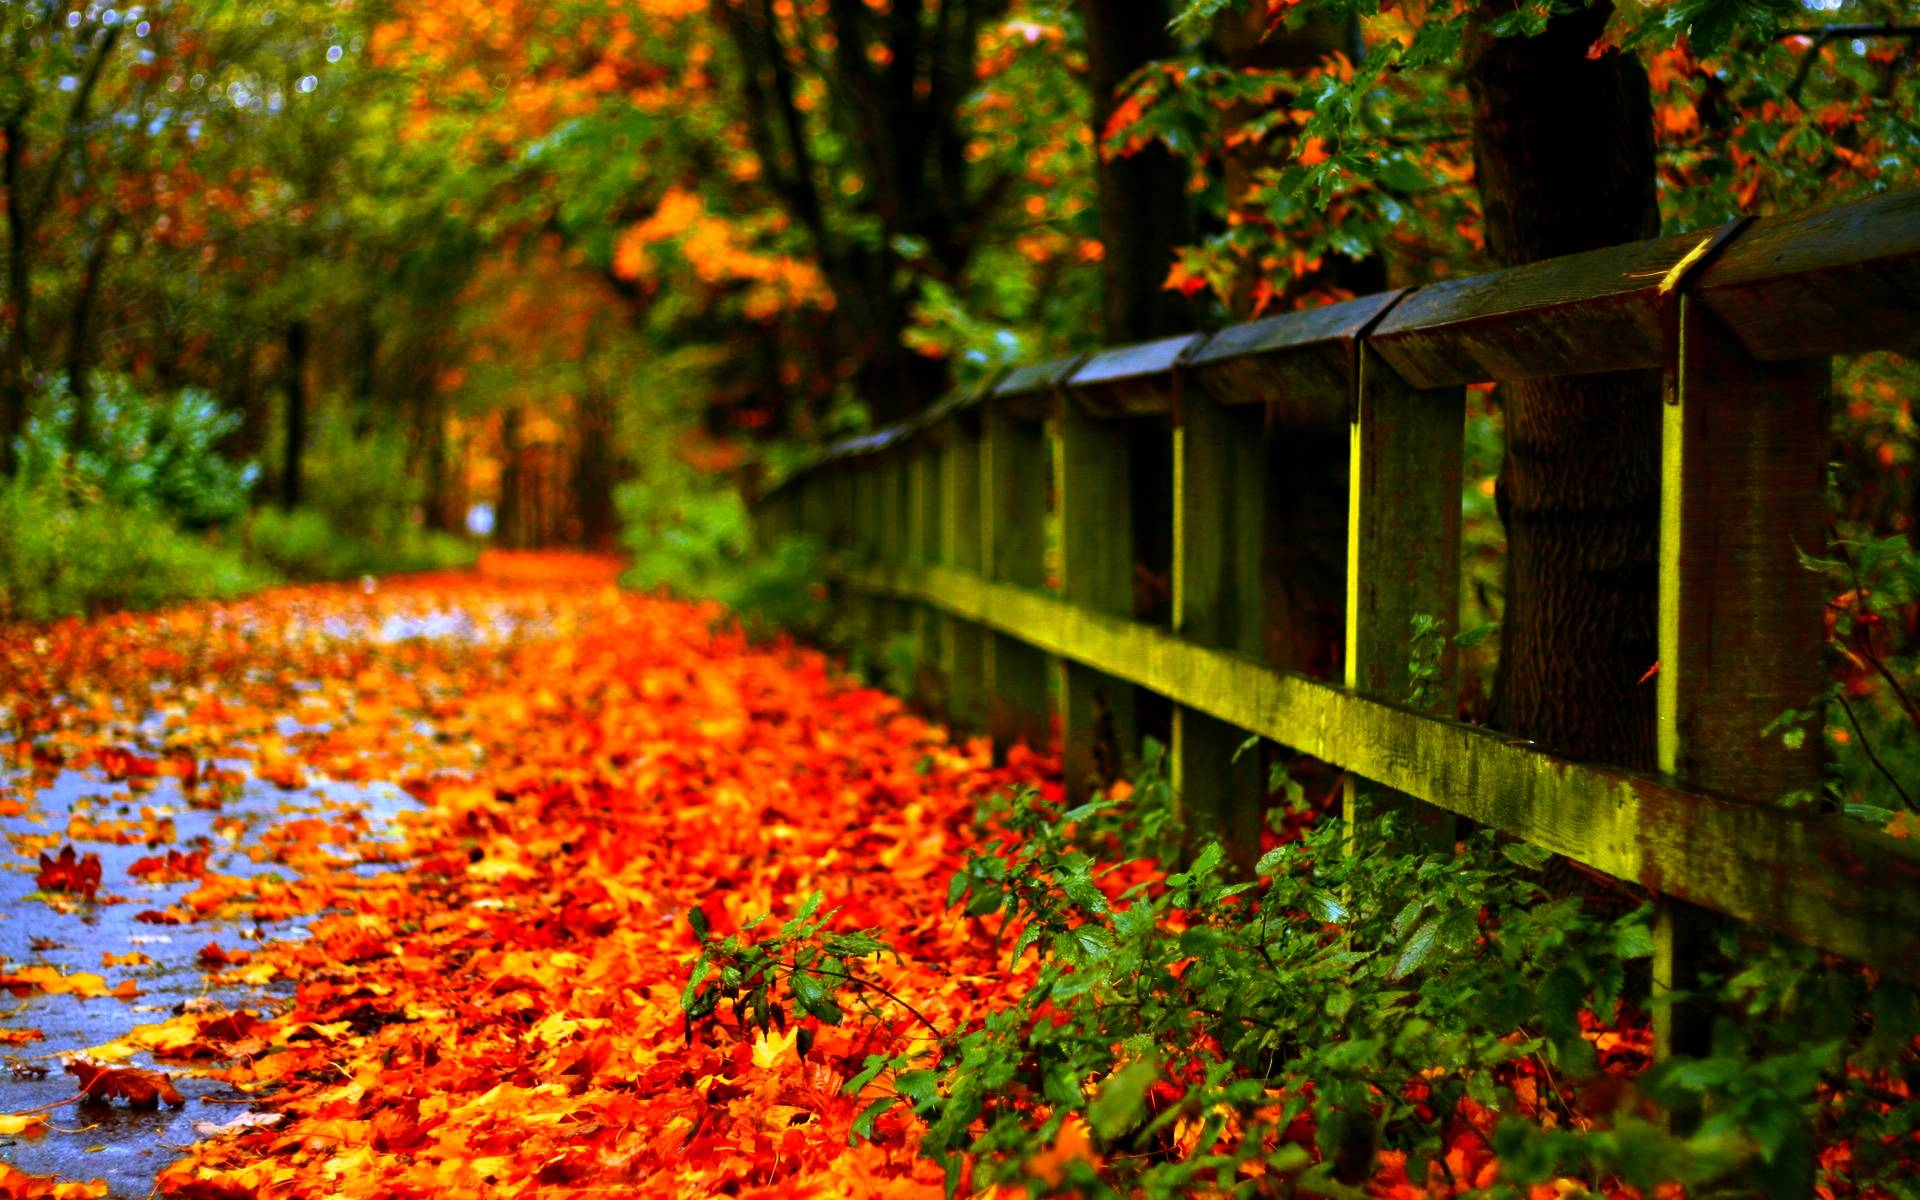 Fall In Love Wallpaper In Hd : Autumn Wallpapers HD - Wallpaper cave